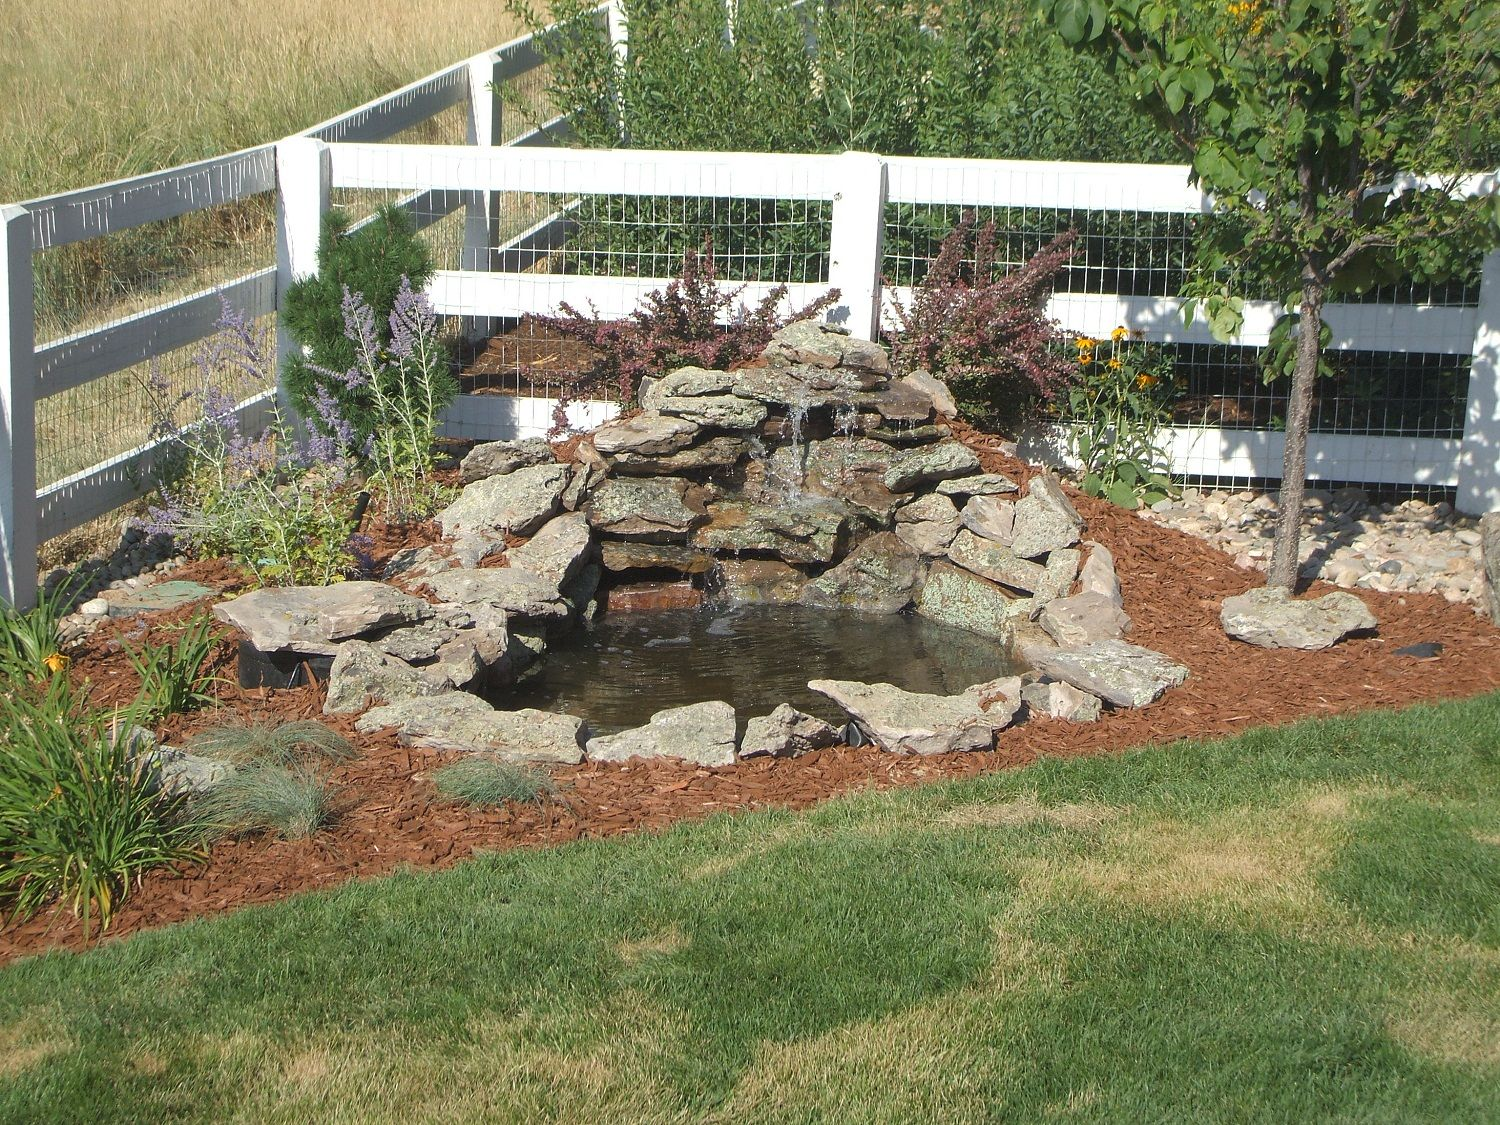 Garden and patio small diy ponds with waterfall and stone for Small garden pond design ideas